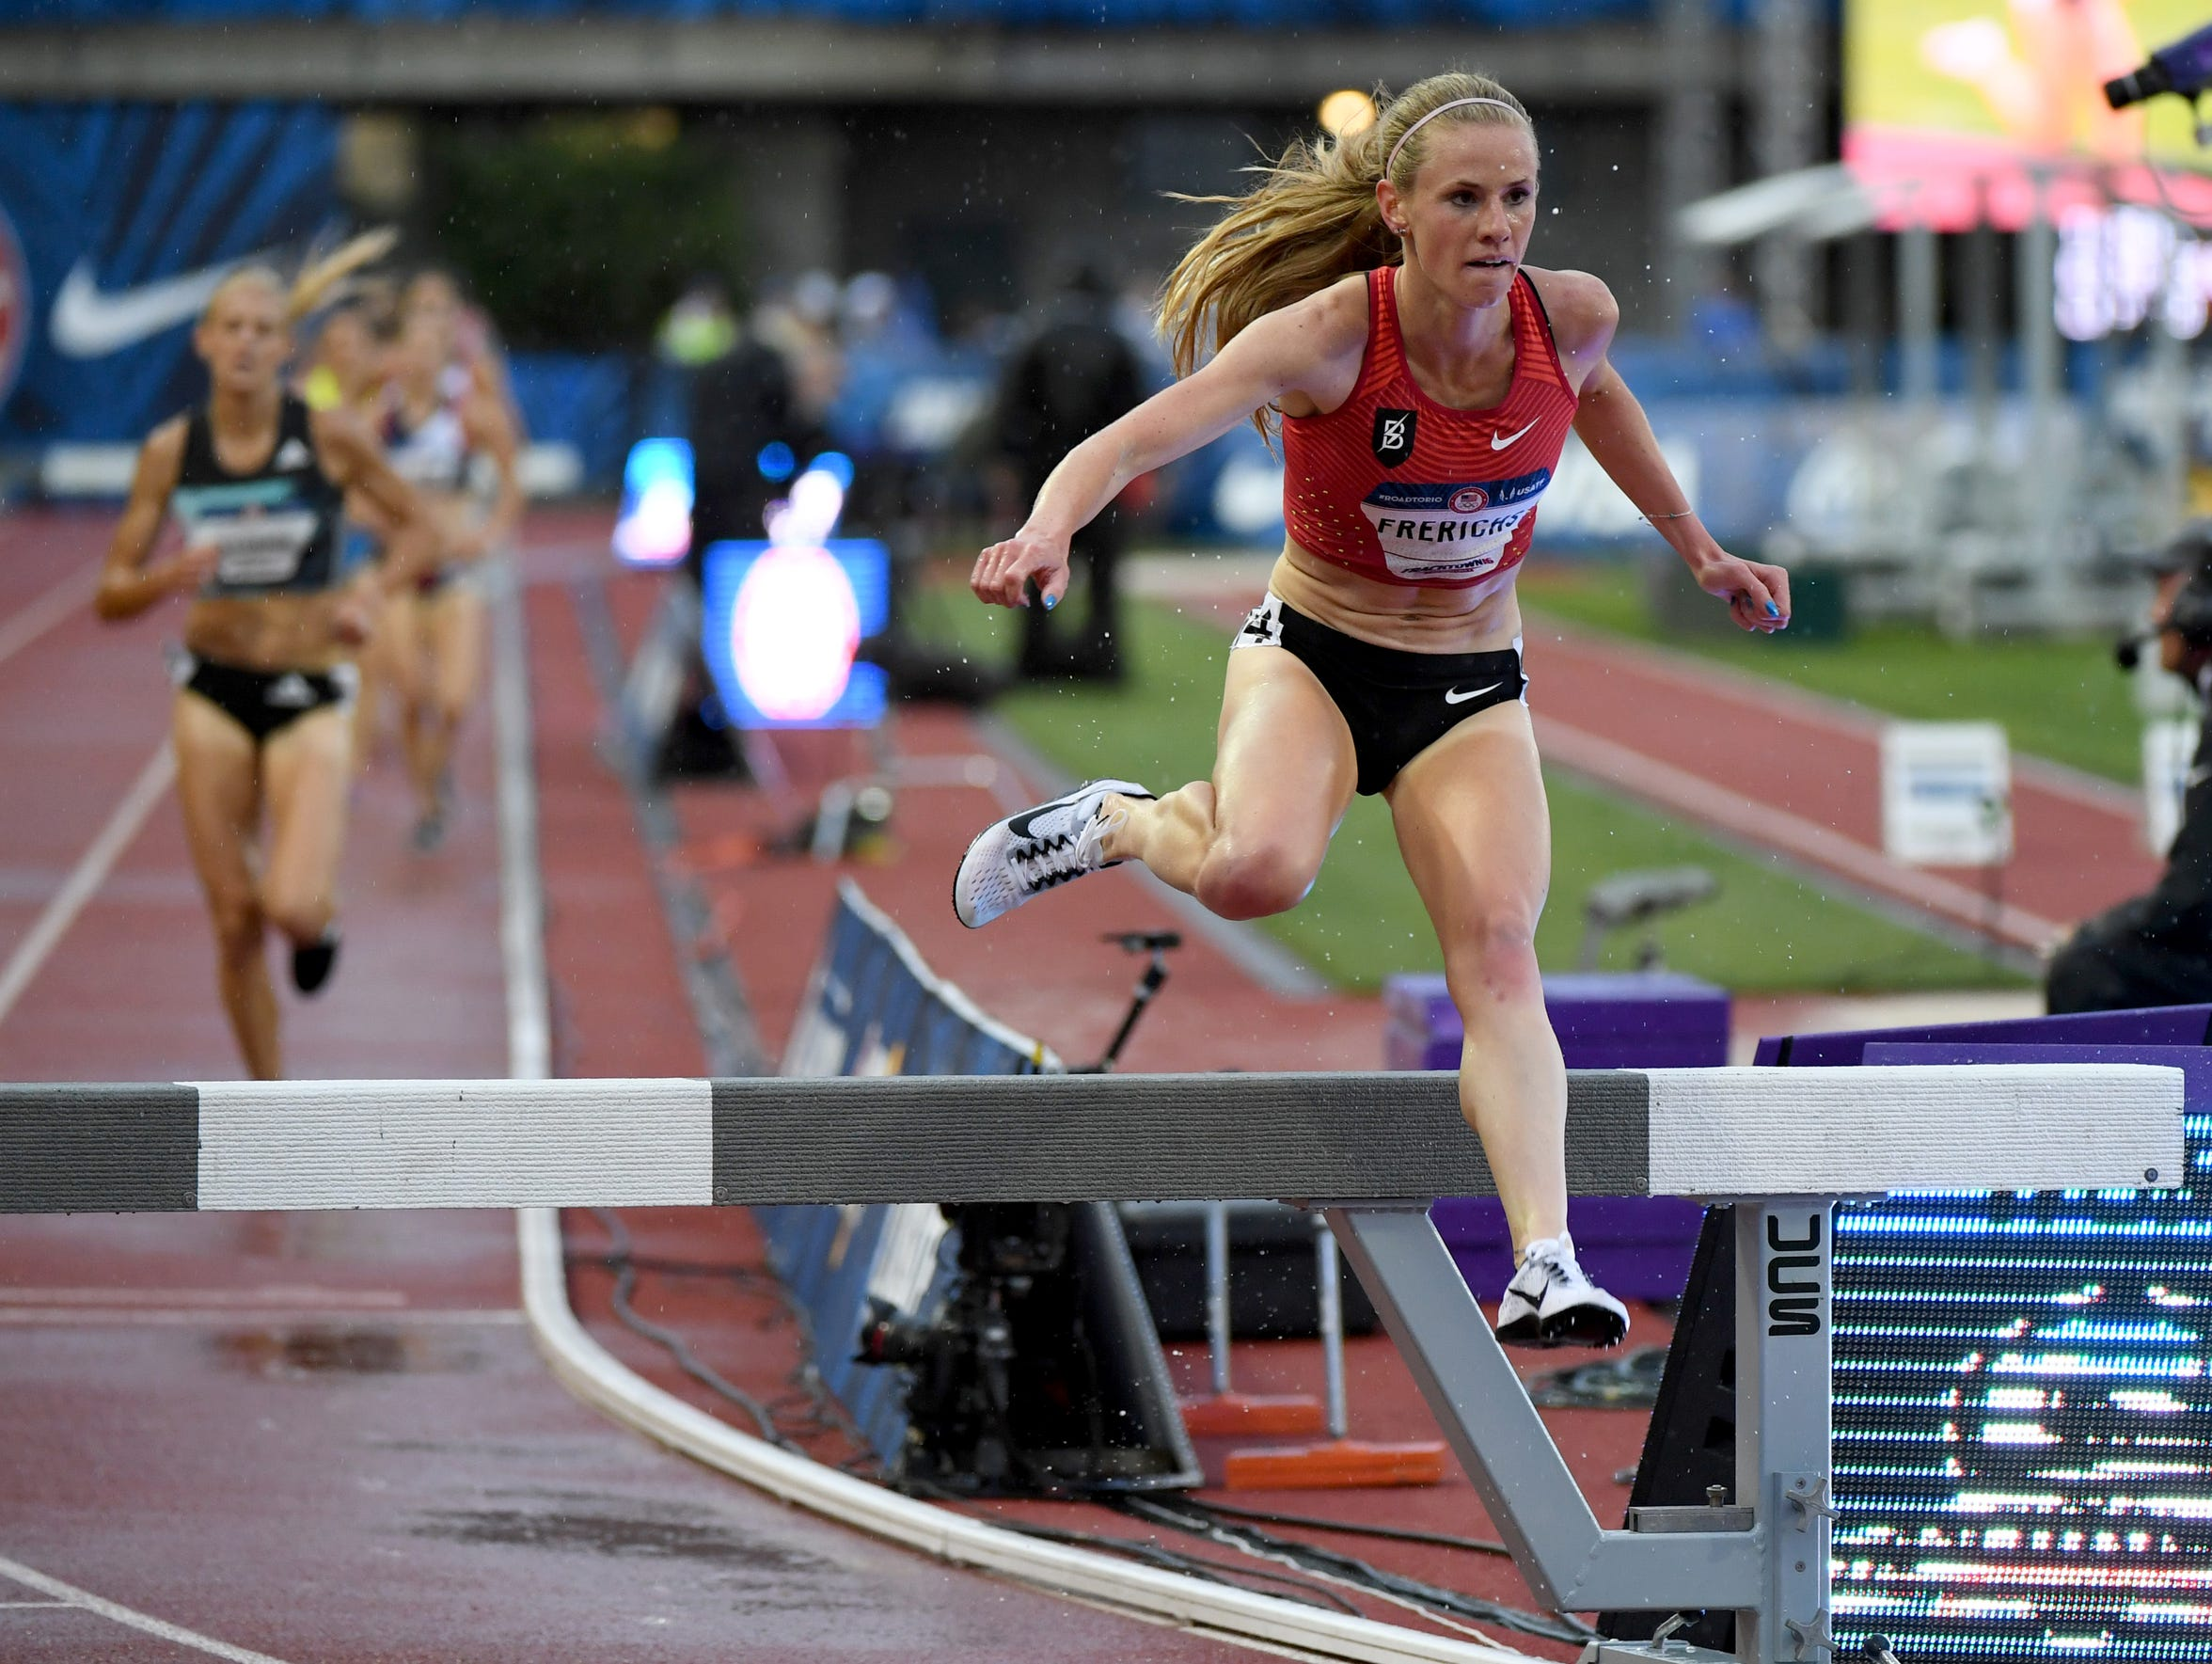 The steeplechase is an event that includes jumping